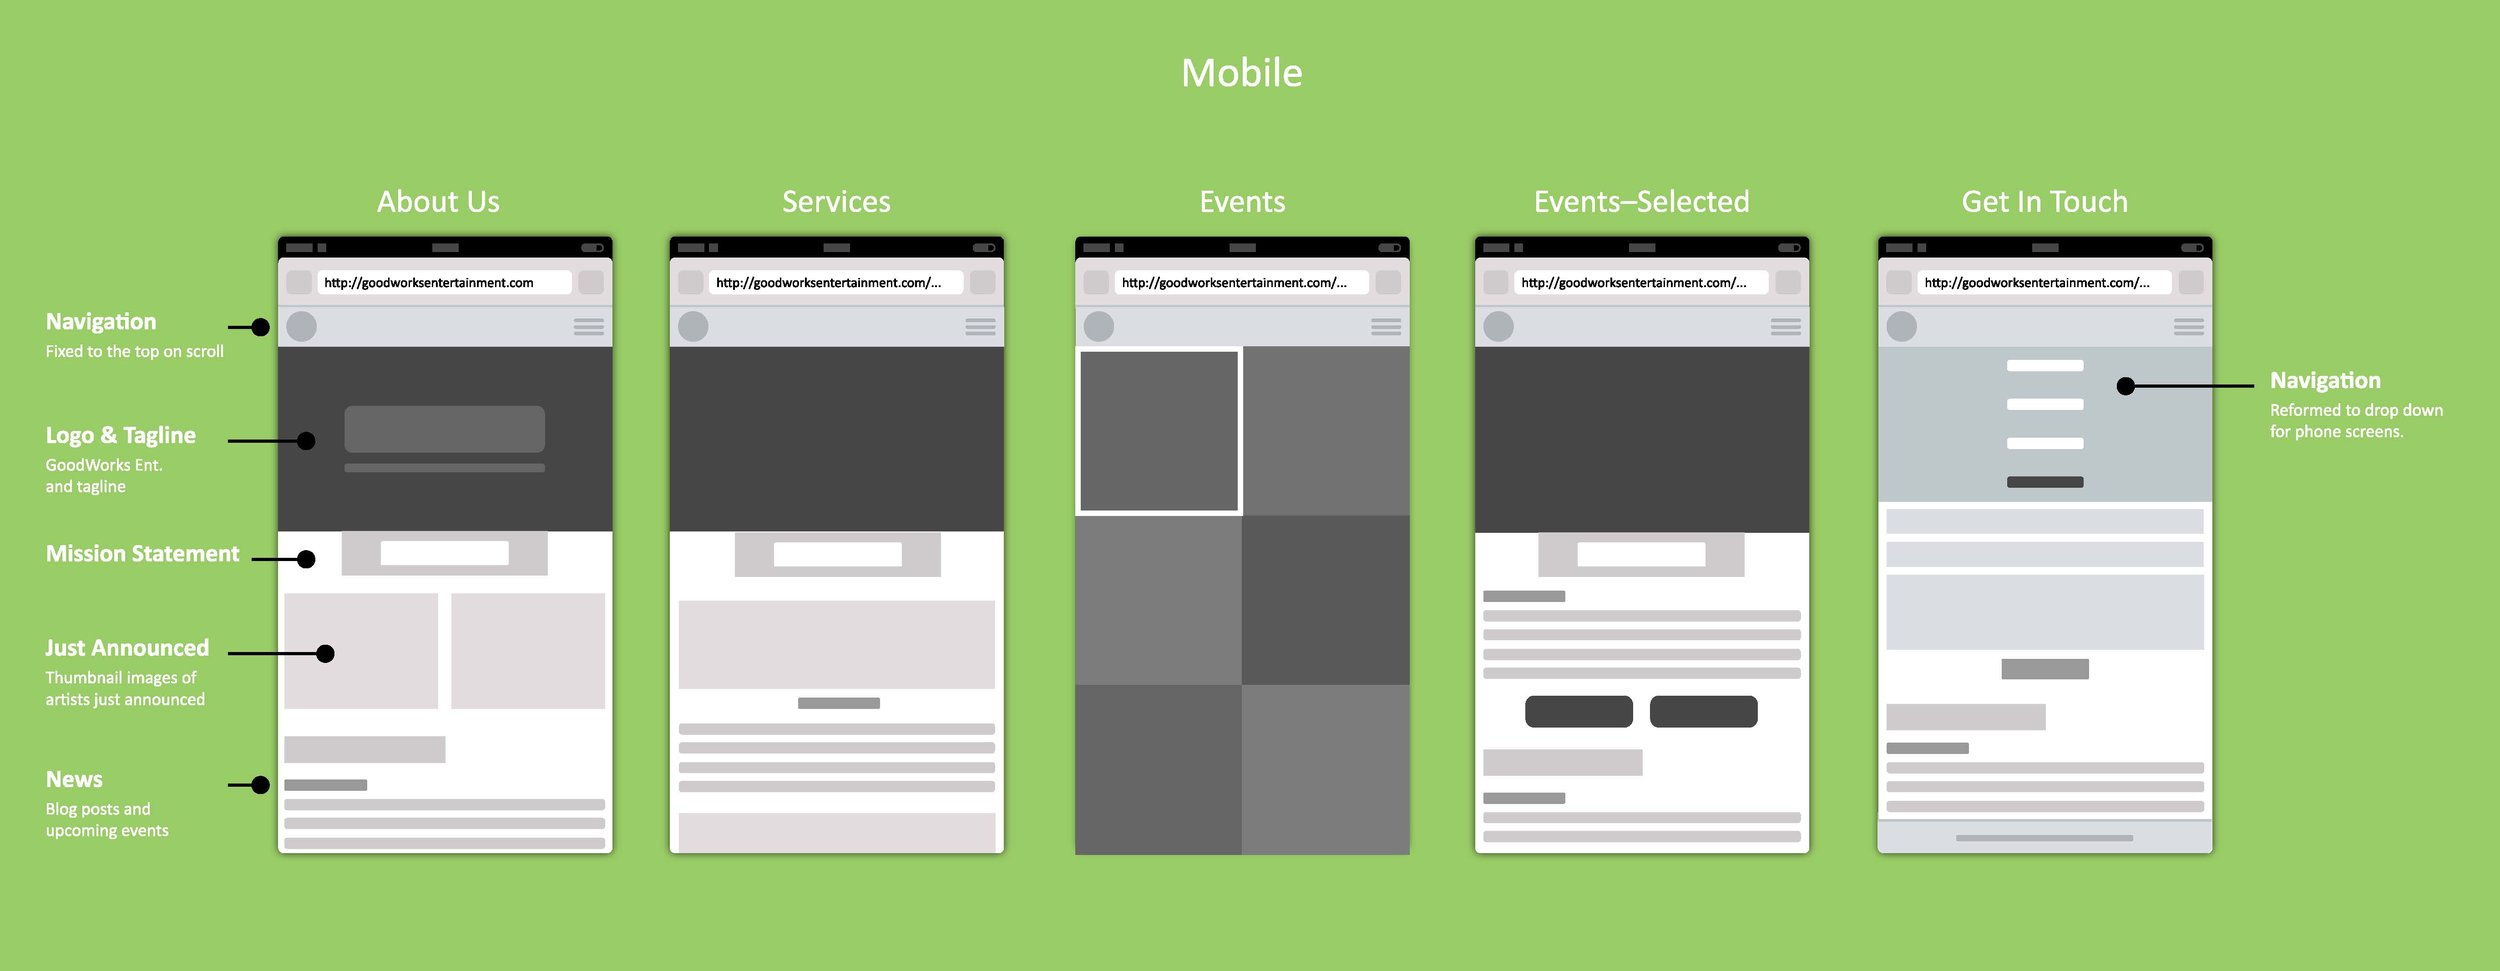 Concept_2_UI-UX_GoodWorks (1)_Page_7.jpg